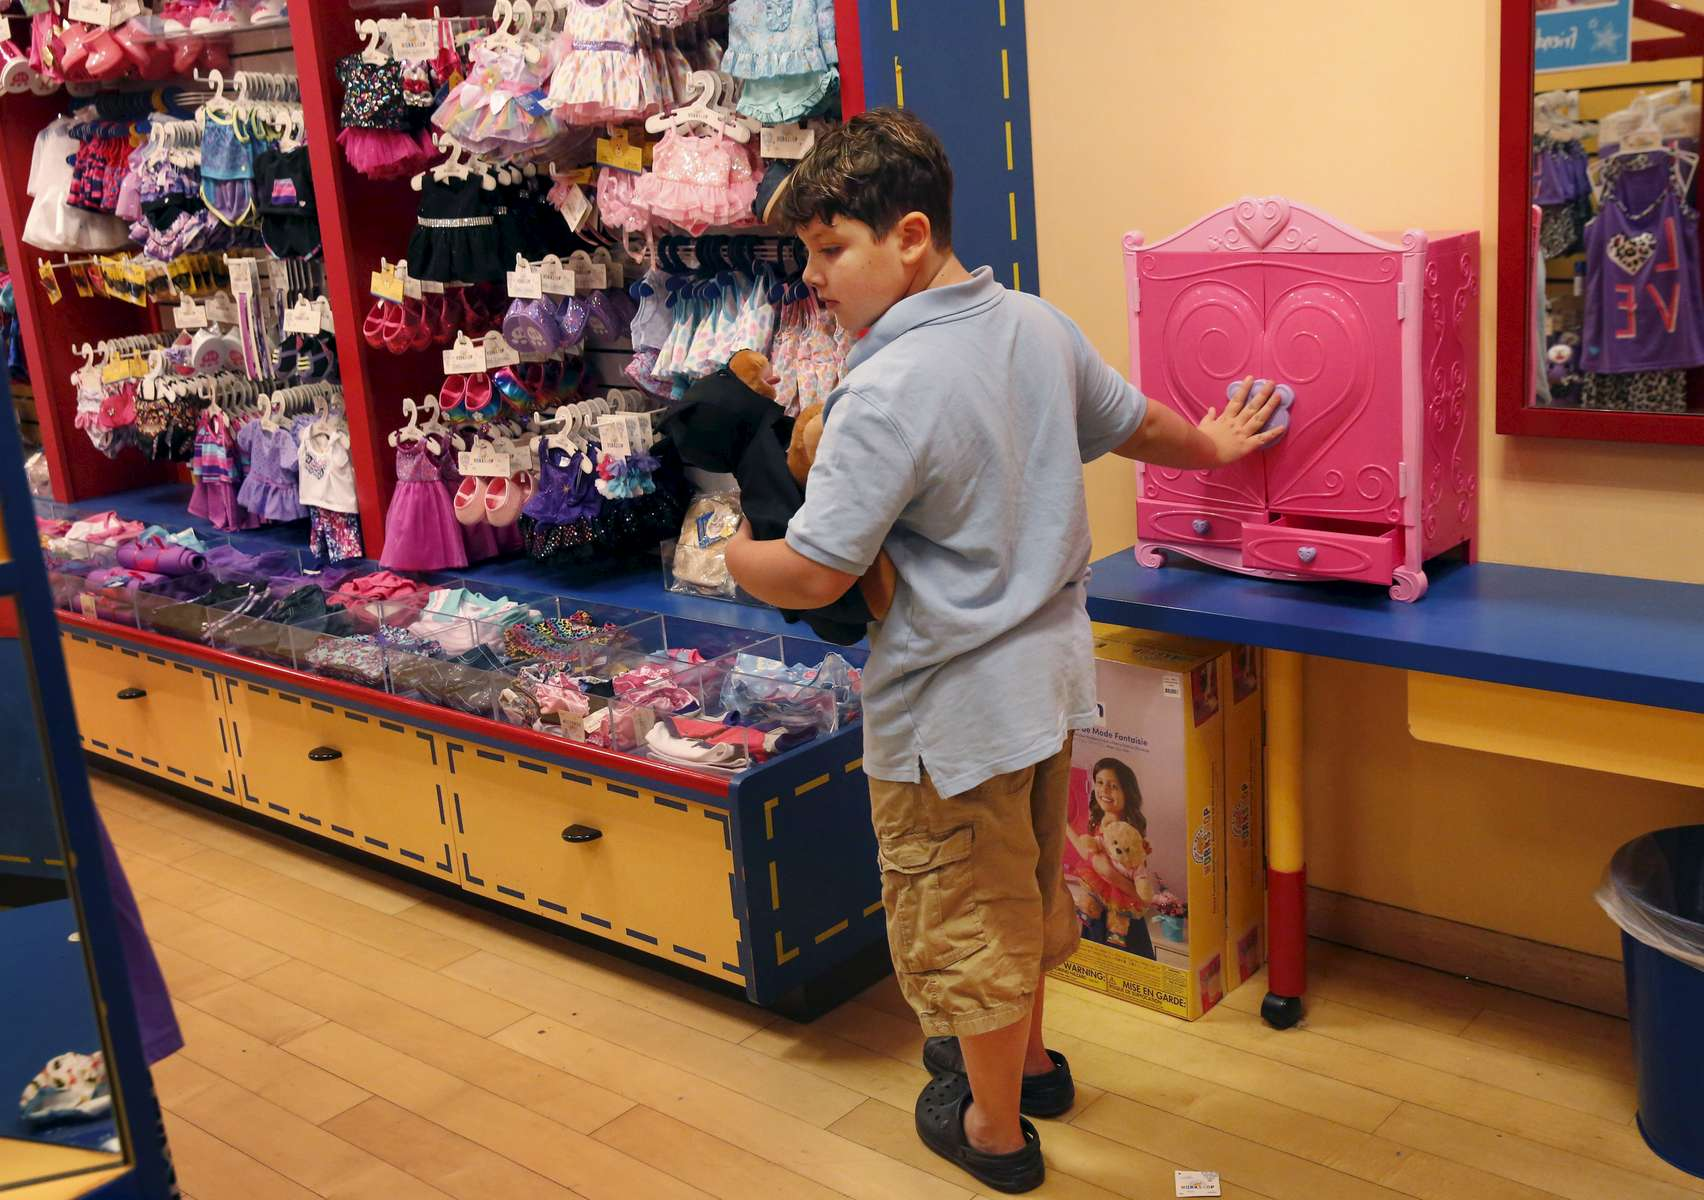 James Kaplan, 8, looks for accessaries for his newly made stuffed dog after finding him a batman costume at Build-A-Bear Workshop in Hillsdale Shopping Center August 11, 2016 in San Mateo, Calif. Sara took both of her children to the store to reward them for doing something physically active every day for 30 days straight.